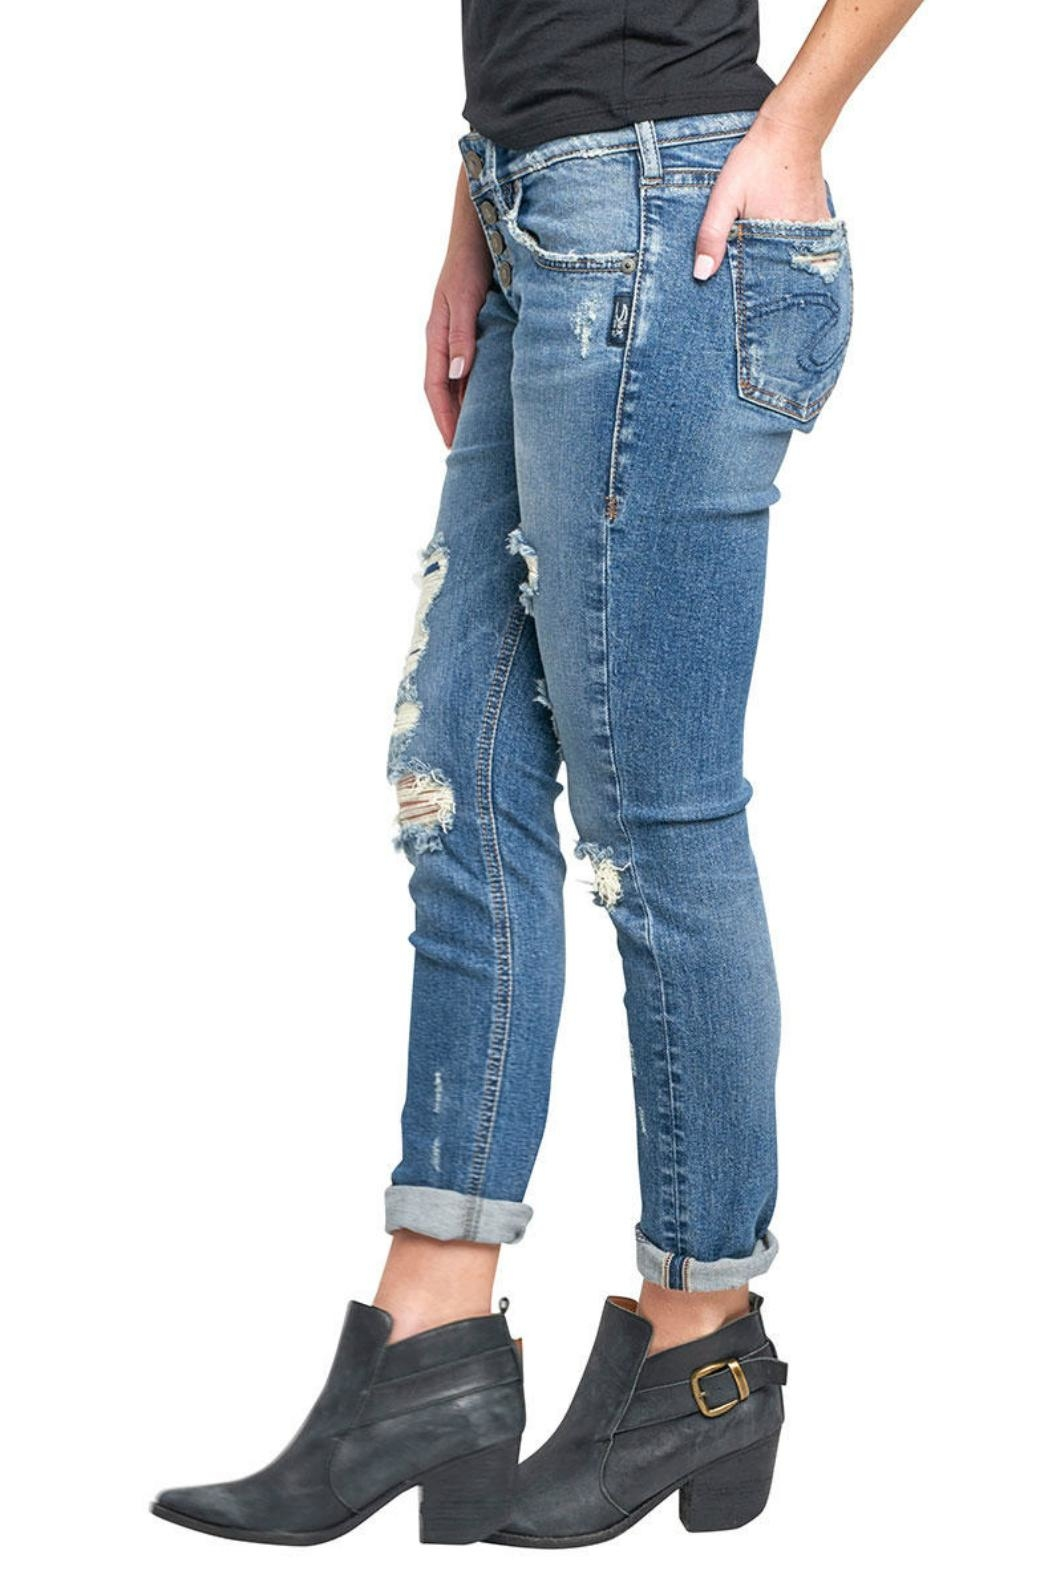 Silver Jeans Co. Kenni Girlfriend Jeans - Side Cropped Image